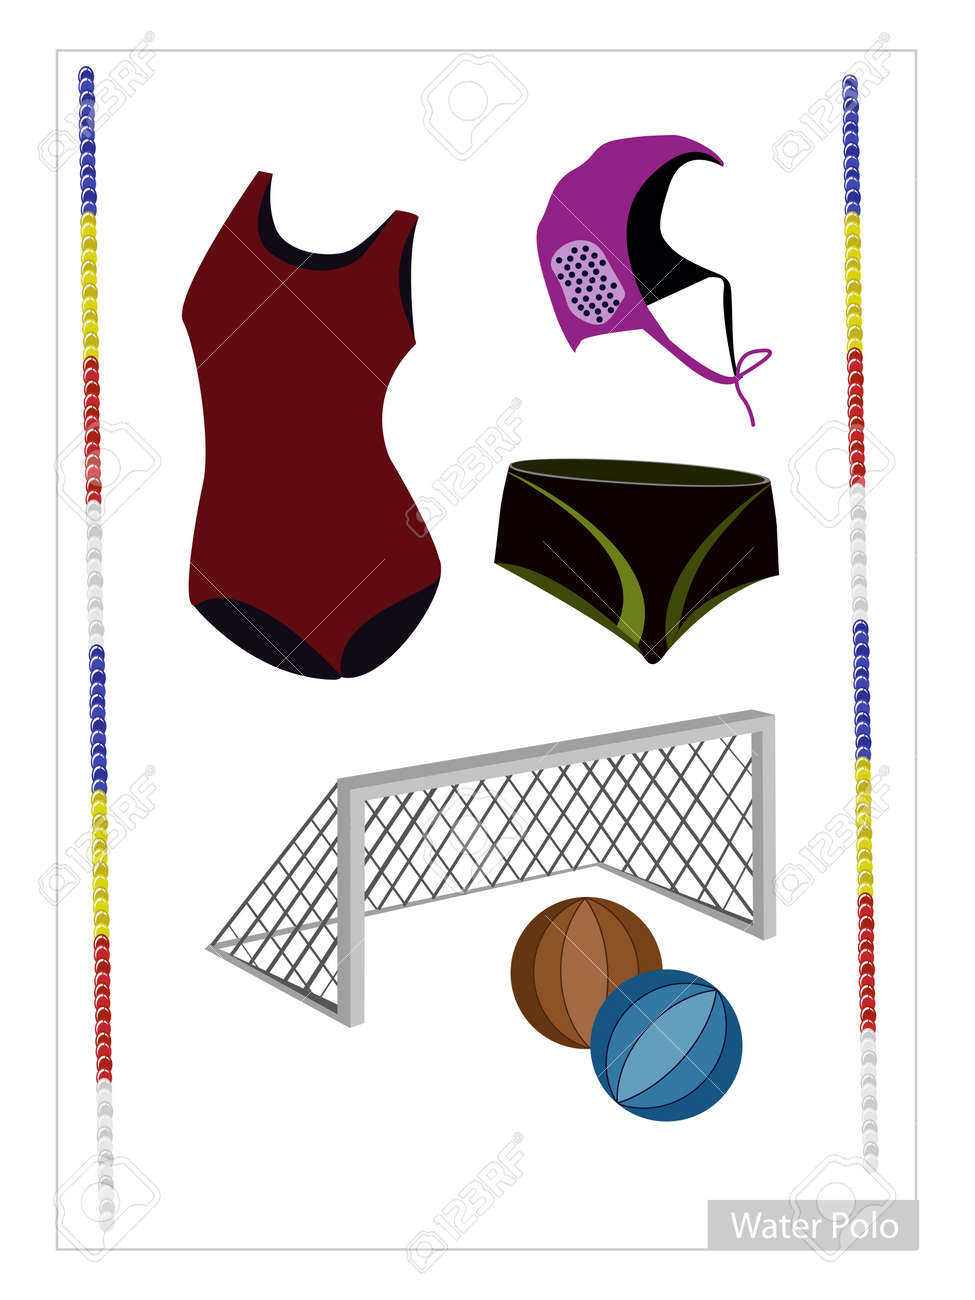 e1bca416ab533 Illustration Collection of Water Polo Accessory and Equipment Isolated on  White Background. Stock Vector -